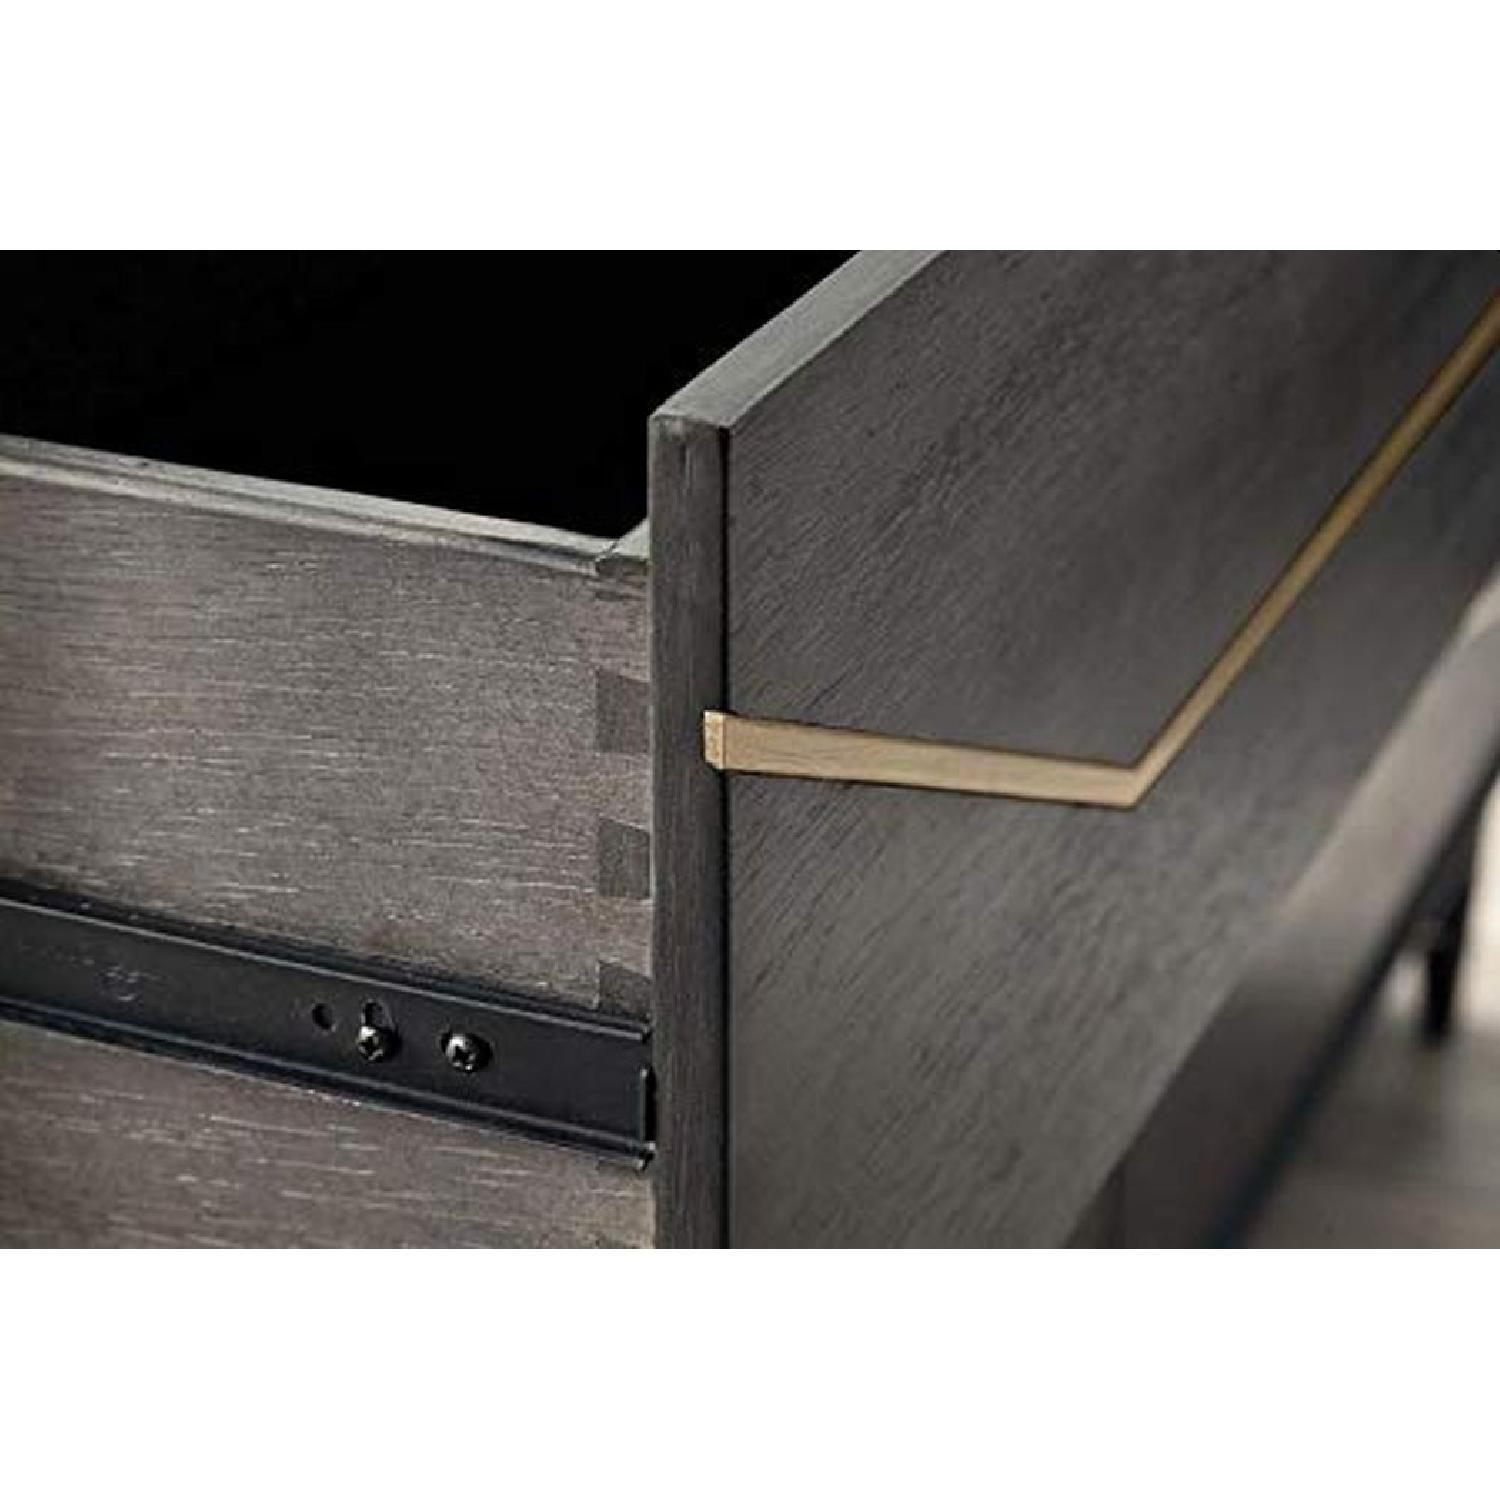 Modern Dresser in Graphite Finish w/ Gold Color Inlay - image-1